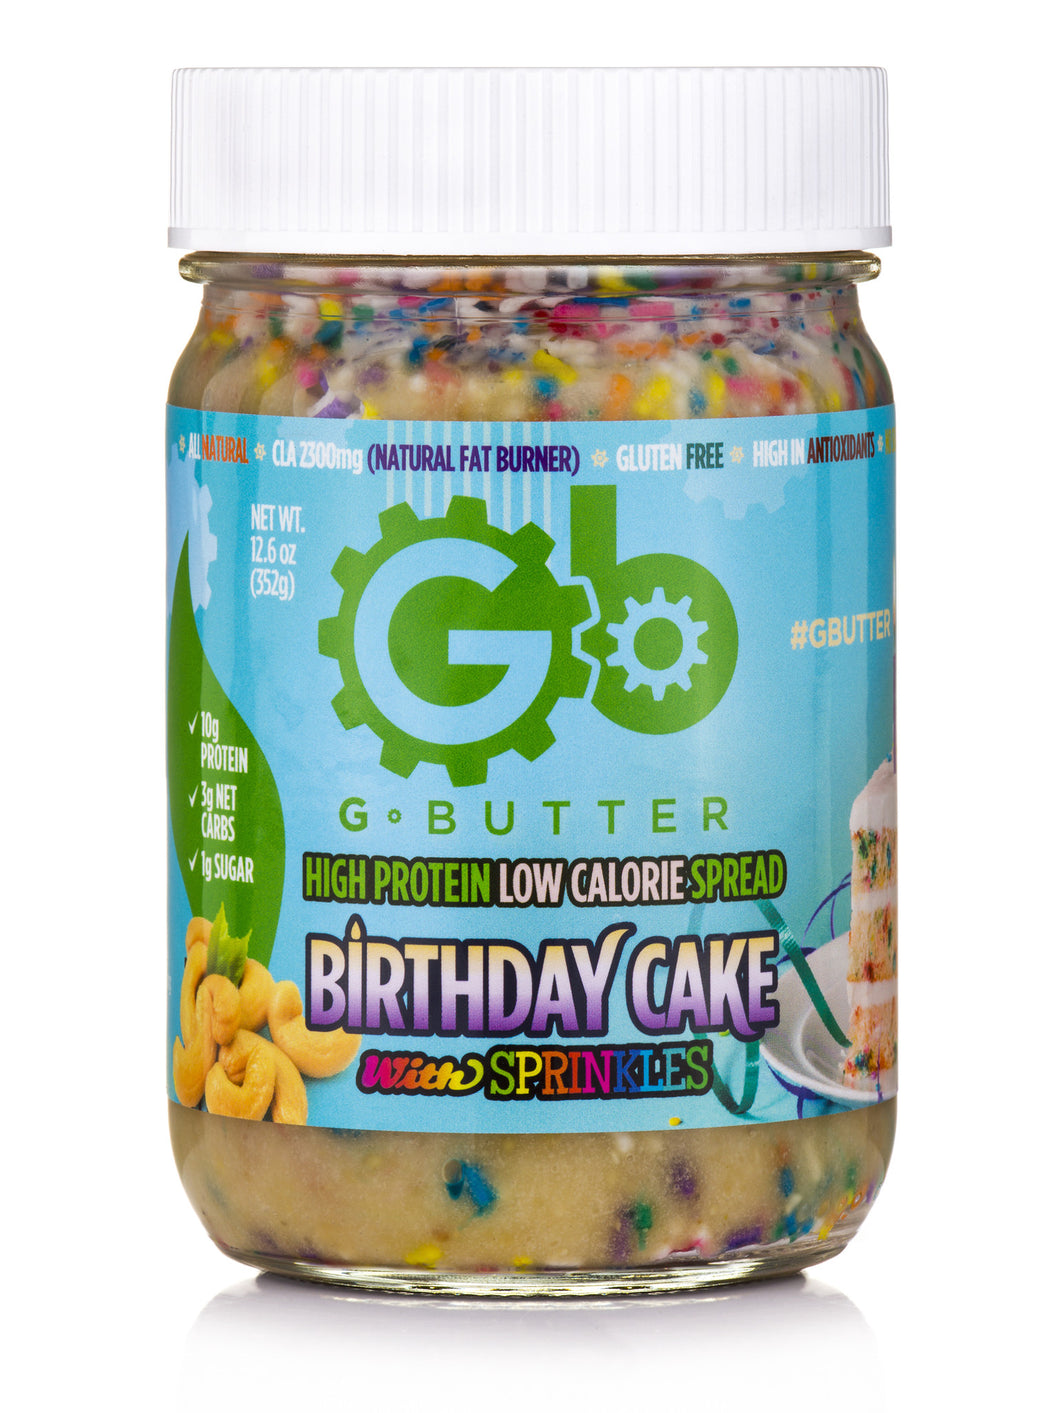 GButter Birthday Cake Nut Butter with Sprinkles 12.6oz